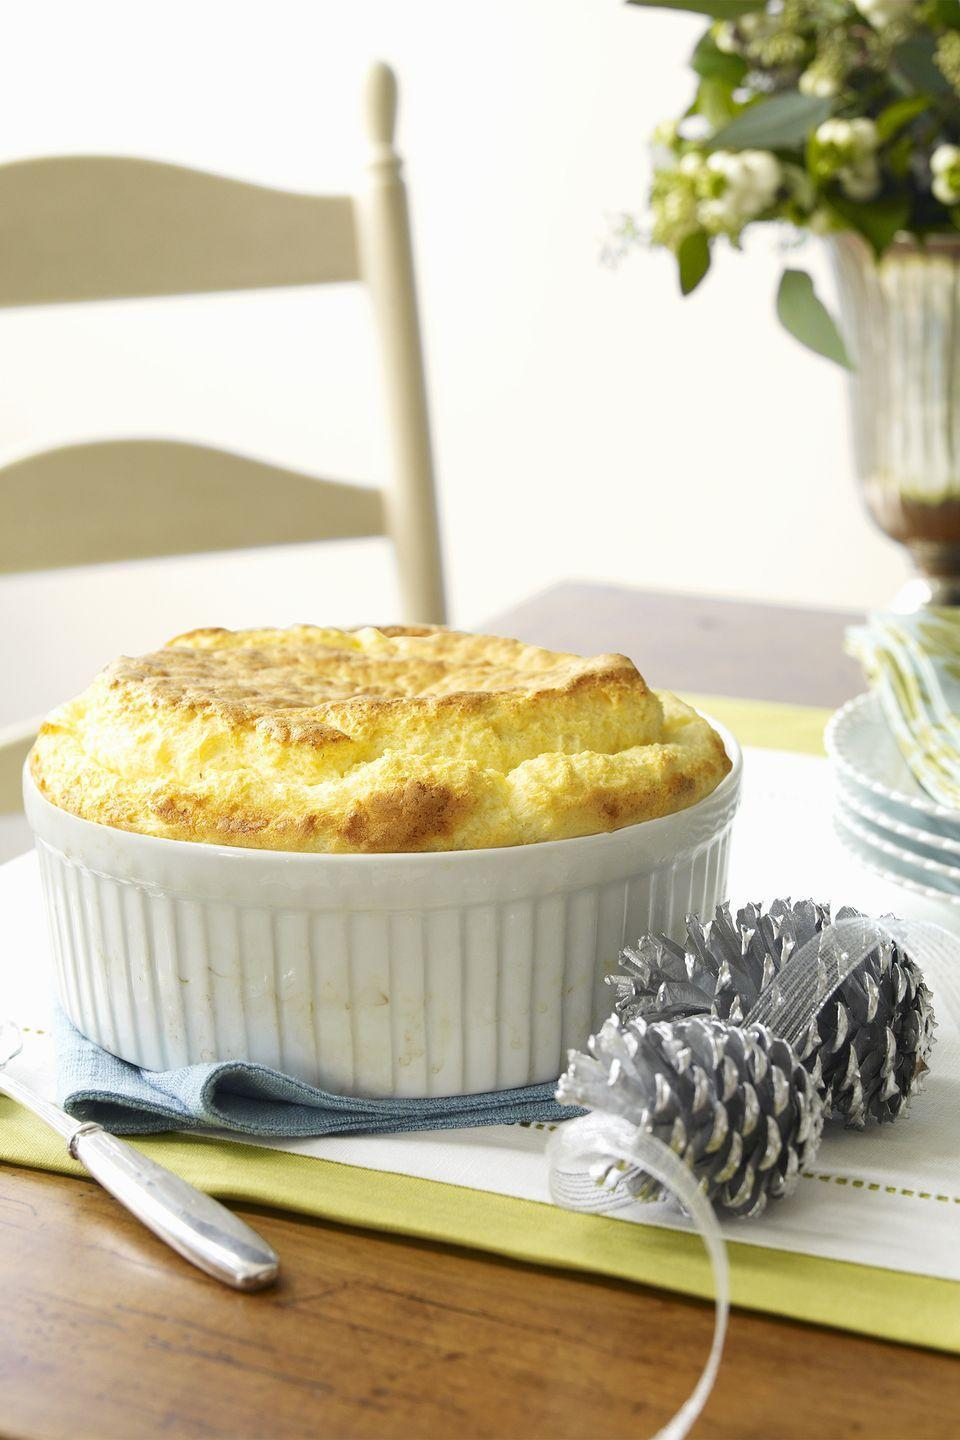 """<p>These mini soufflé dishes are elegant, light, and intimate.</p><p><strong><a href=""""https://www.countryliving.com/food-drinks/recipes/a1872/cheese-grits-corn-pudding-3997/"""" rel=""""nofollow noopener"""" target=""""_blank"""" data-ylk=""""slk:Get the recipe"""" class=""""link rapid-noclick-resp"""">Get the recipe</a>.</strong></p>"""